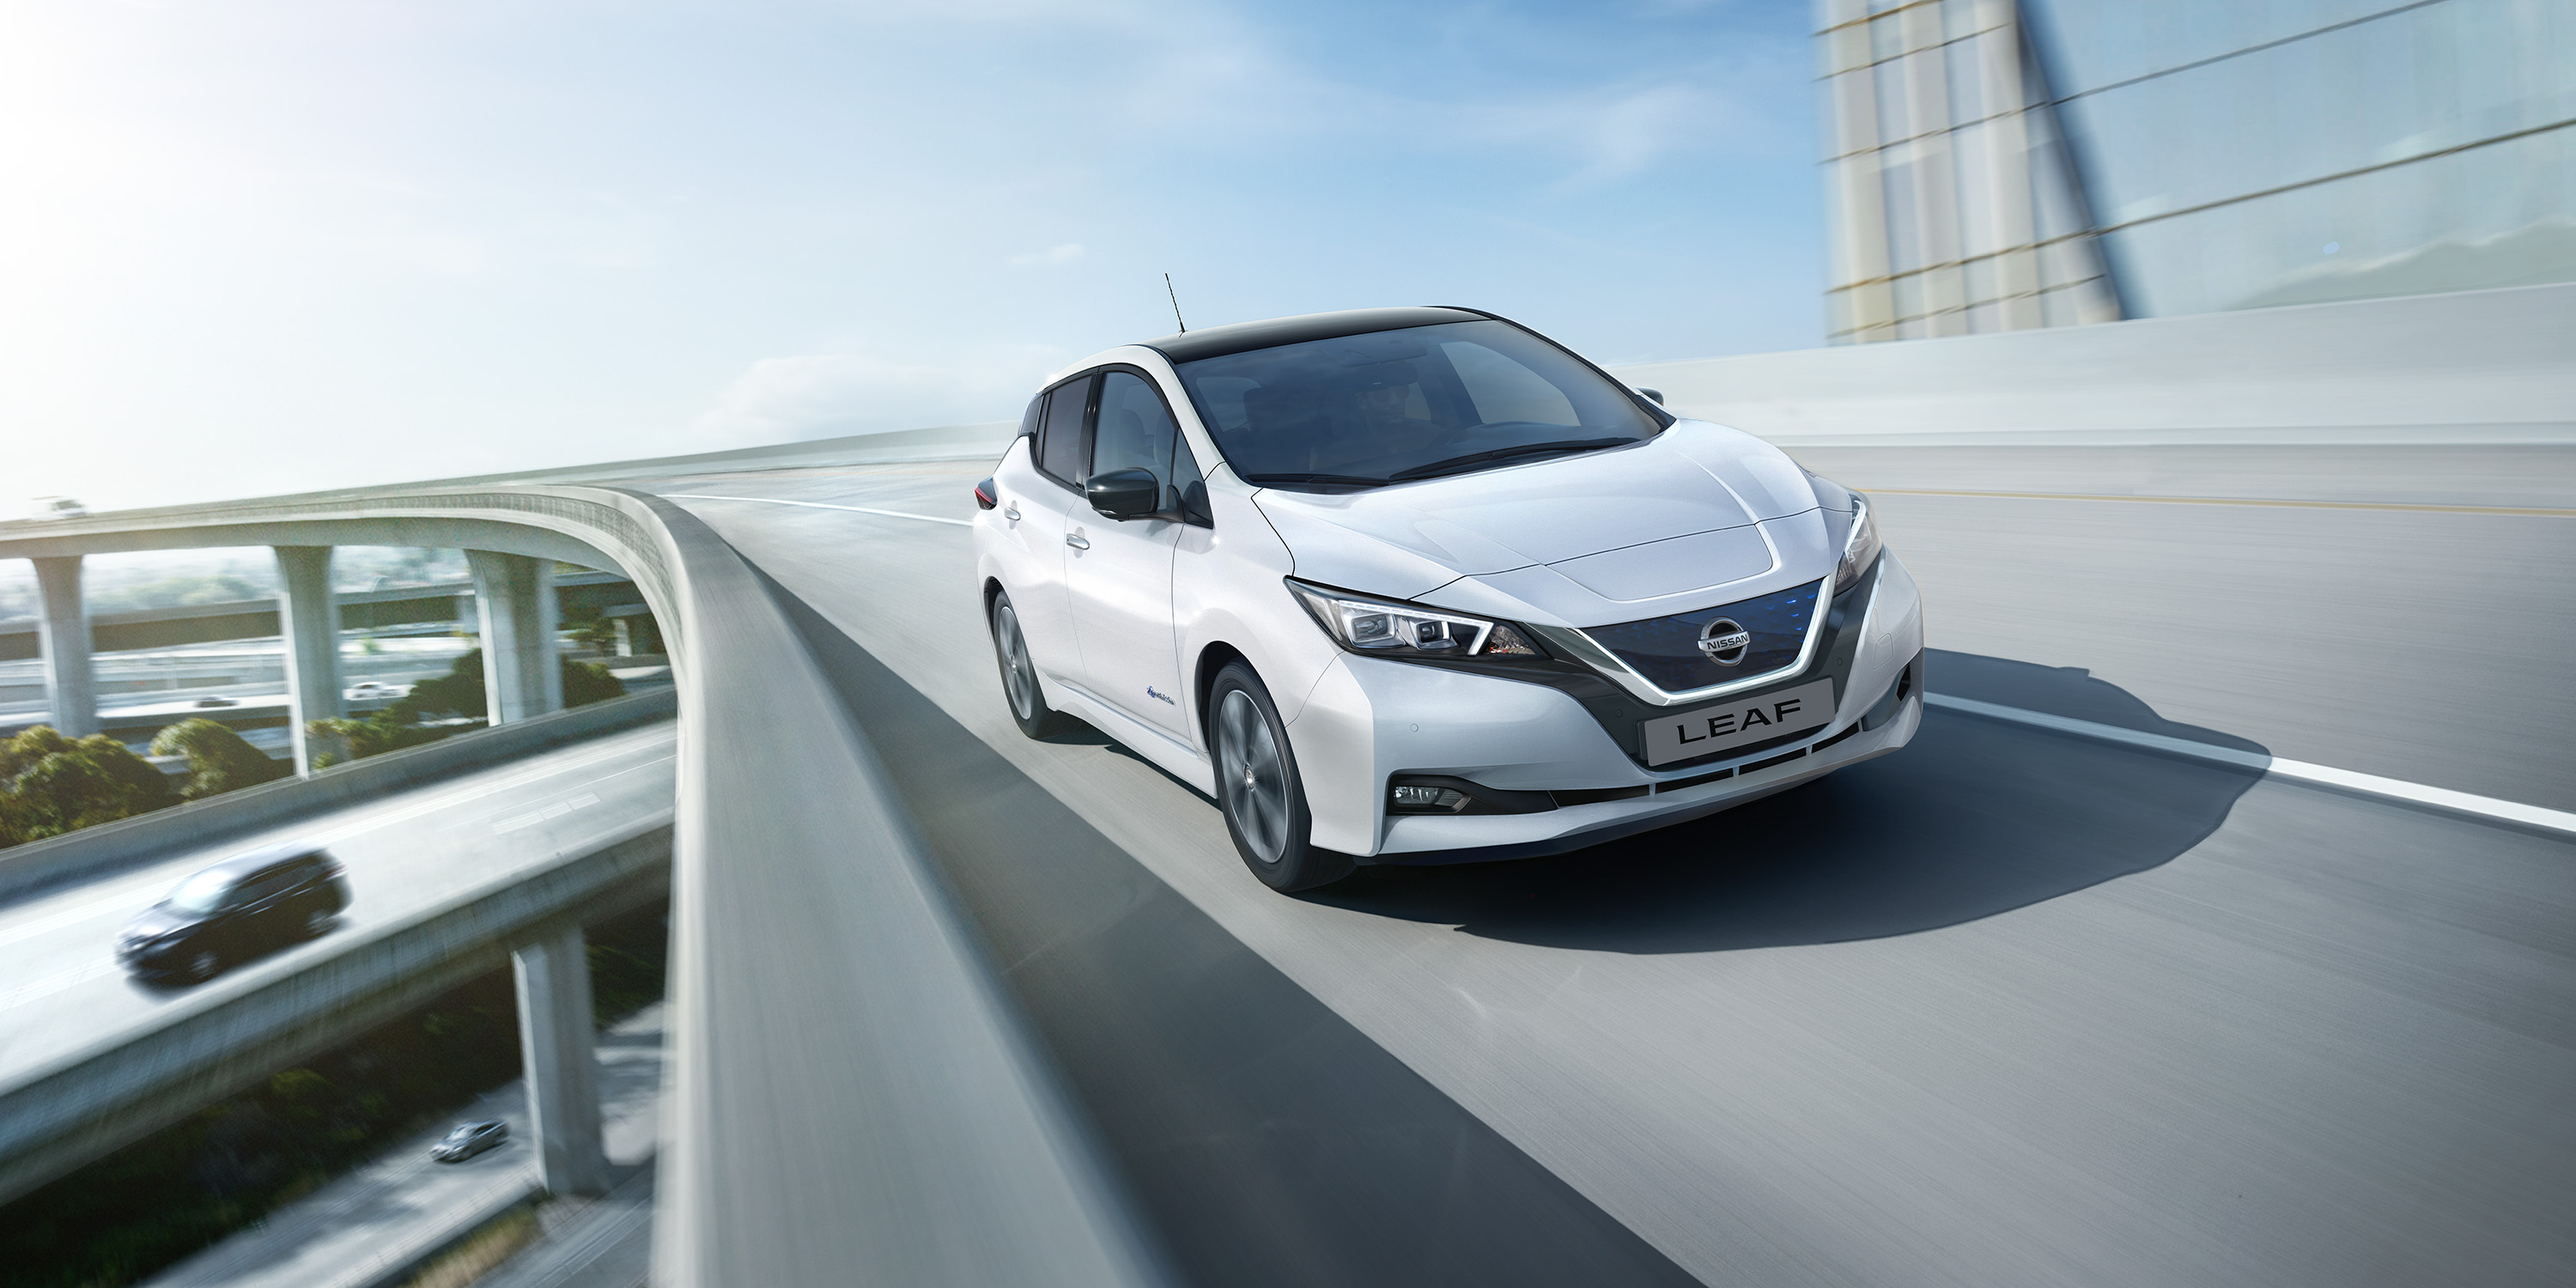 New Nissan LEAF driving on a bridge